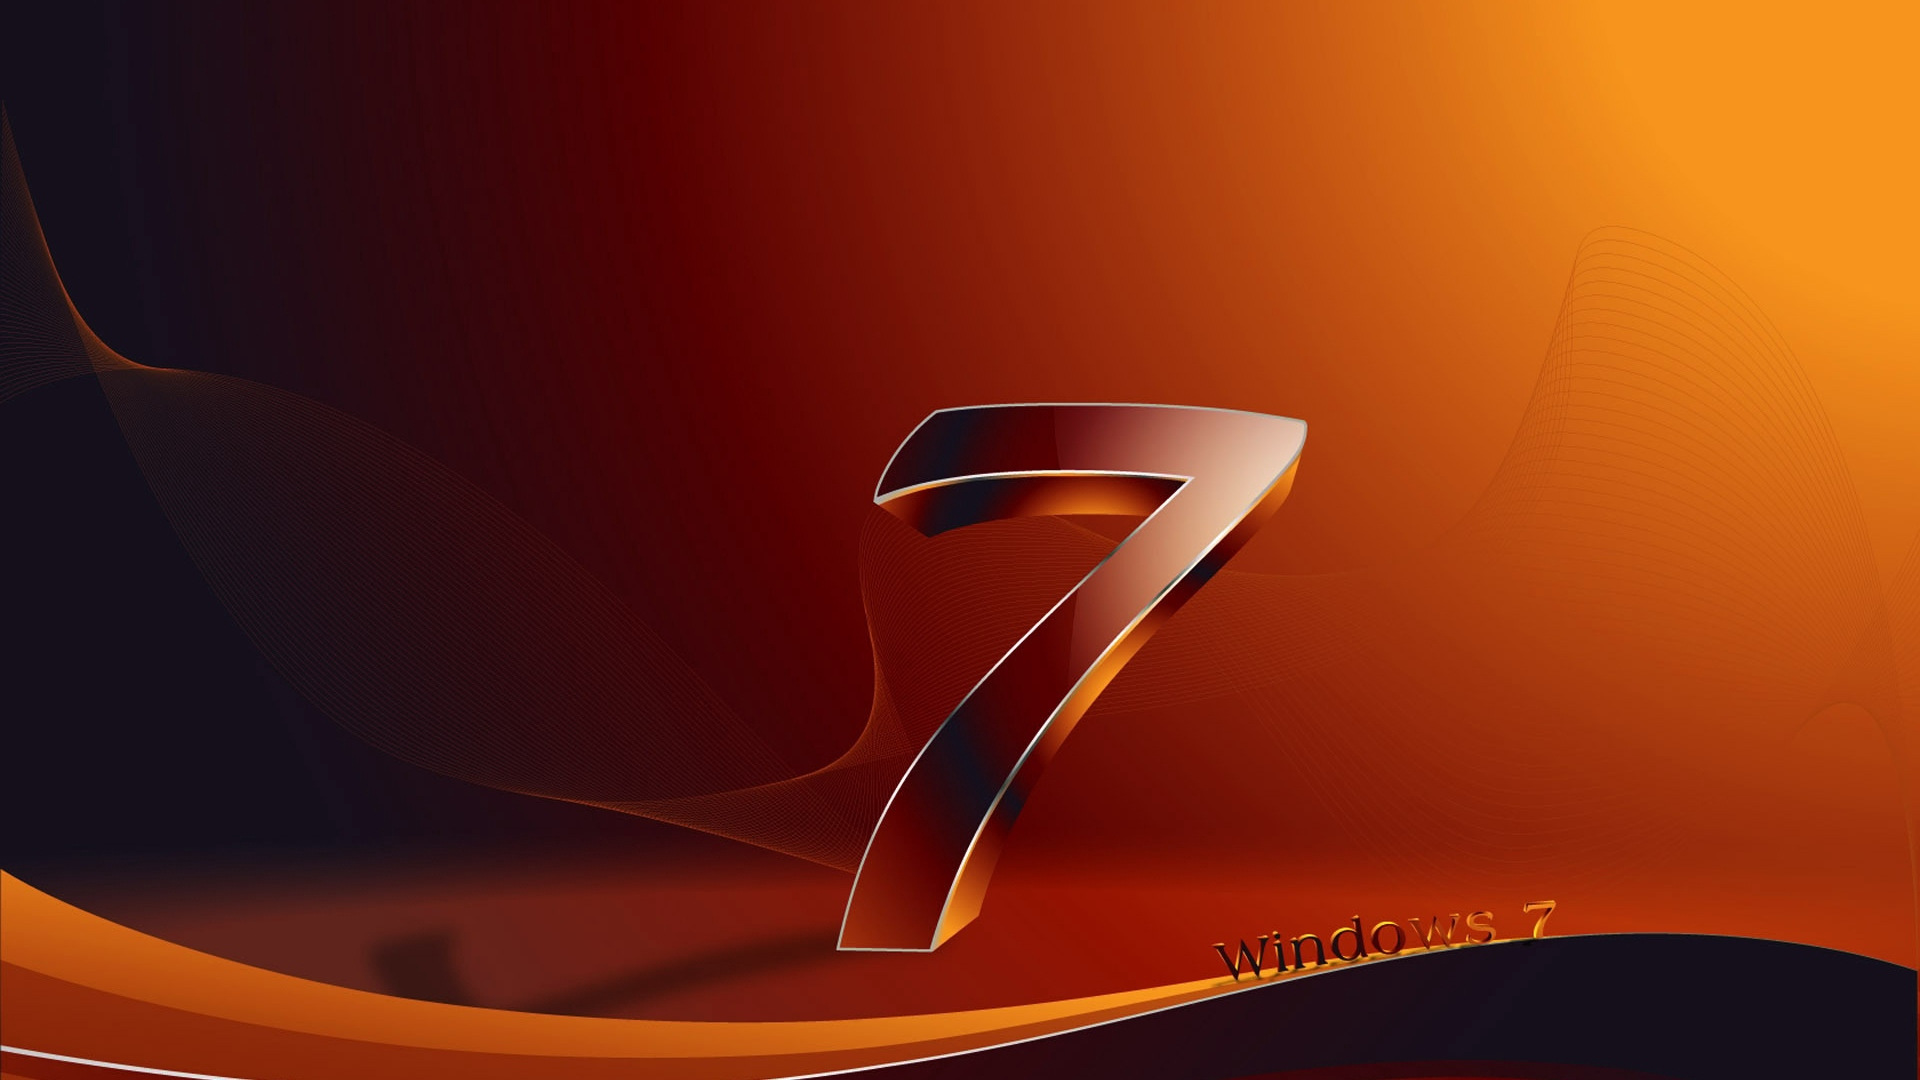 Download wallpaper 1920x1080 windows 7 os orange black full hd 1920x1080